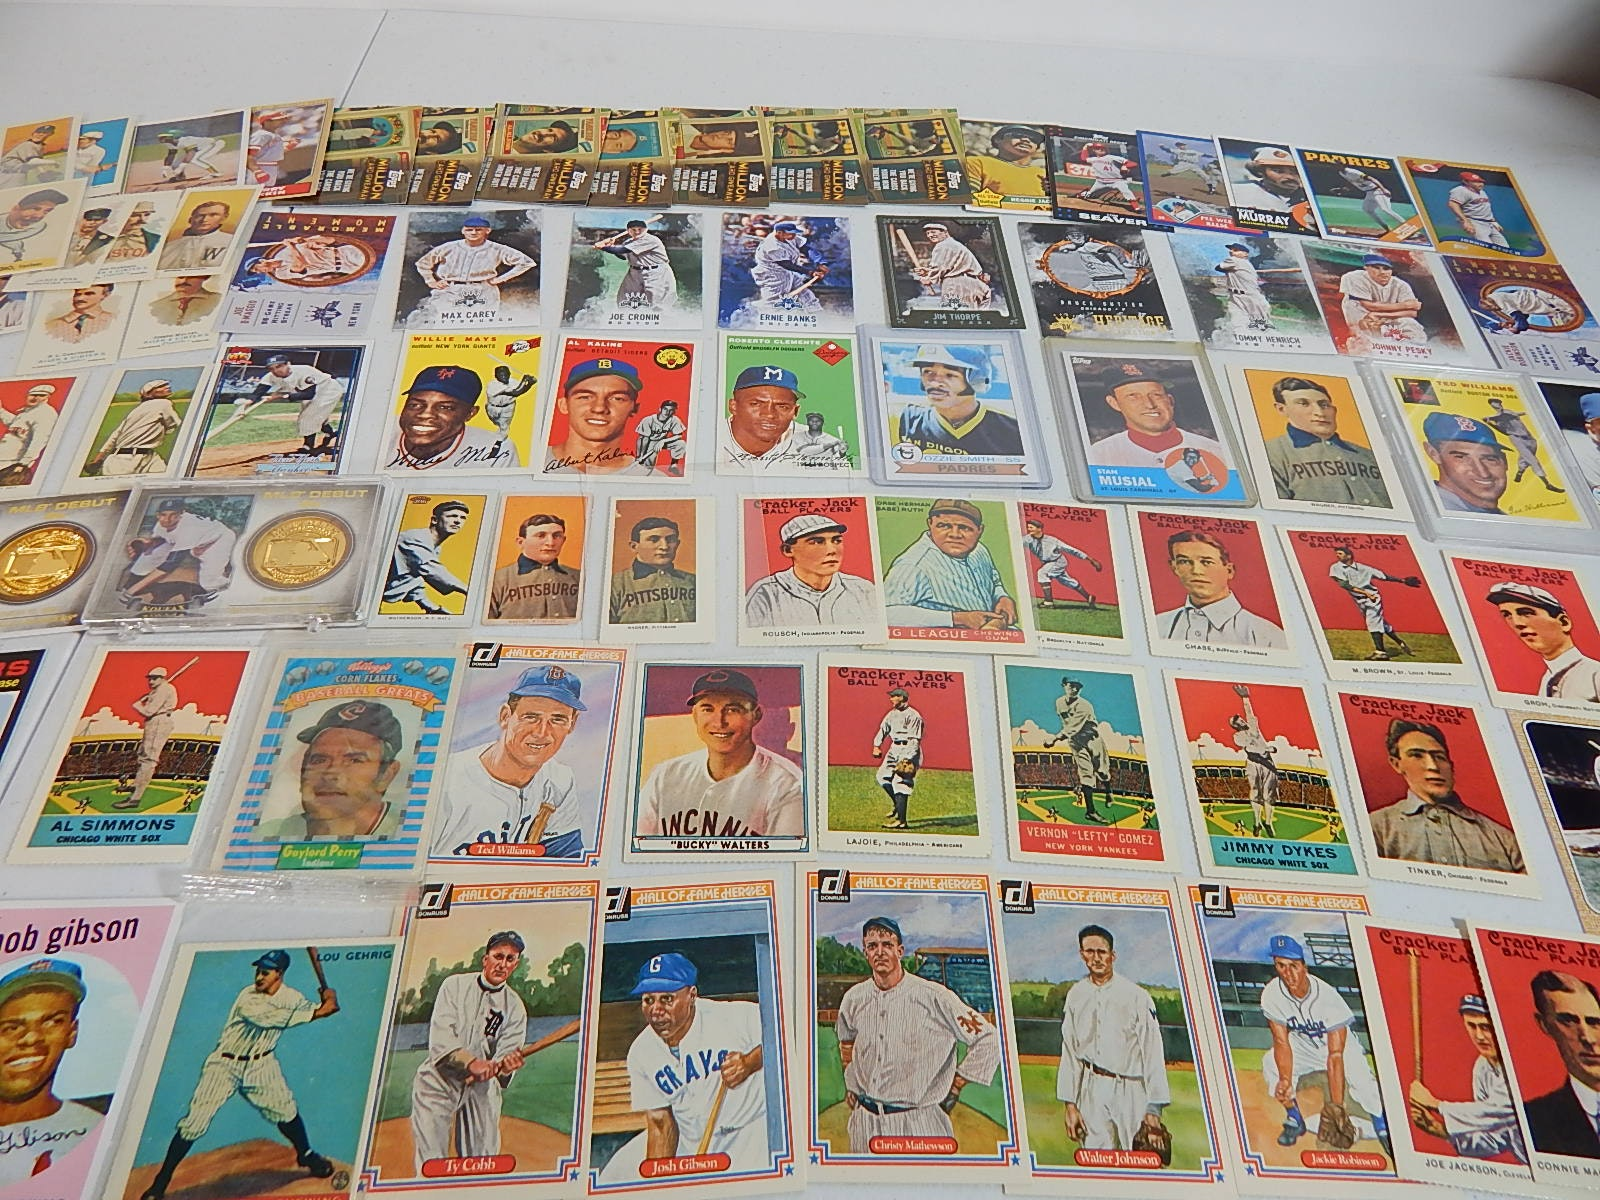 1980s through 2000 Archives and Dover Reprint HOF Cards - Over 80 Card Count